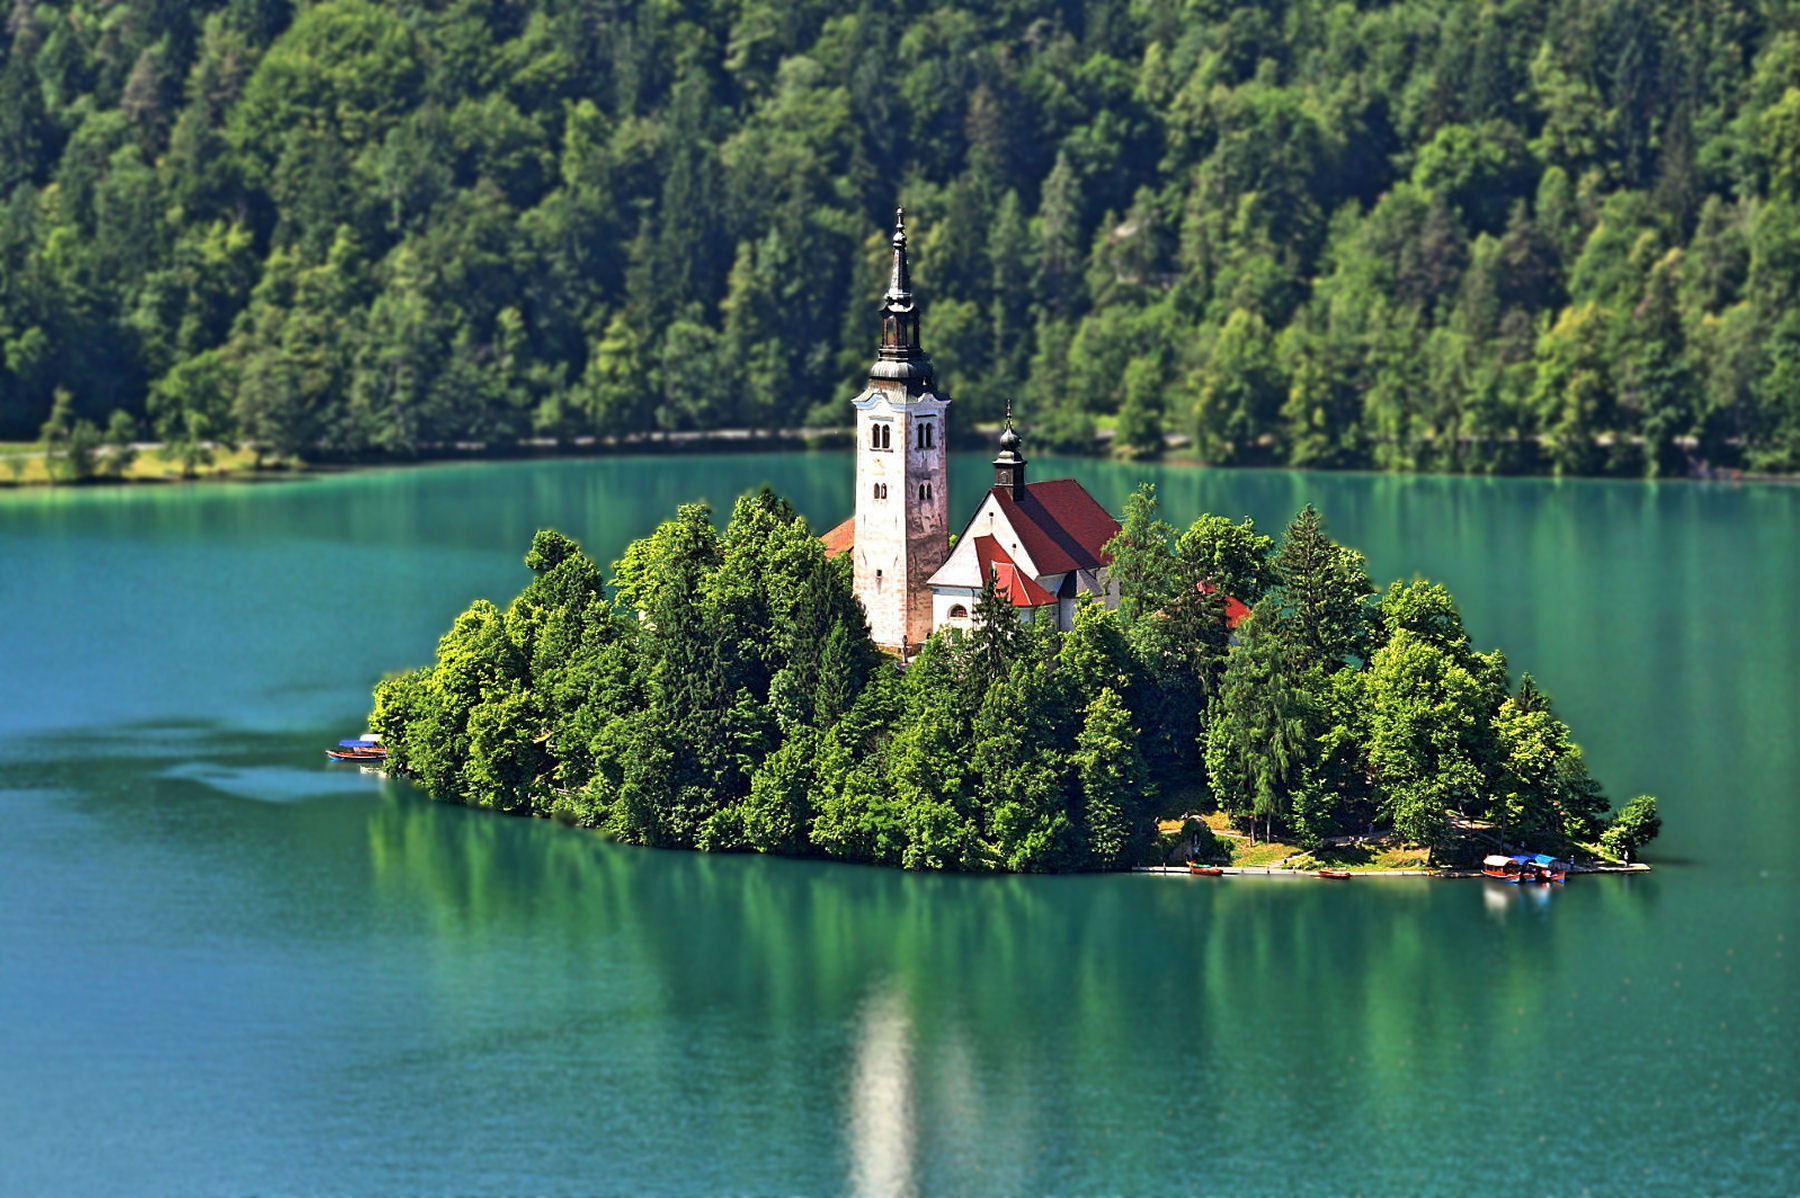 Pilgrimage Church of the Assumption of Mary is known as Our Lady of the Lake